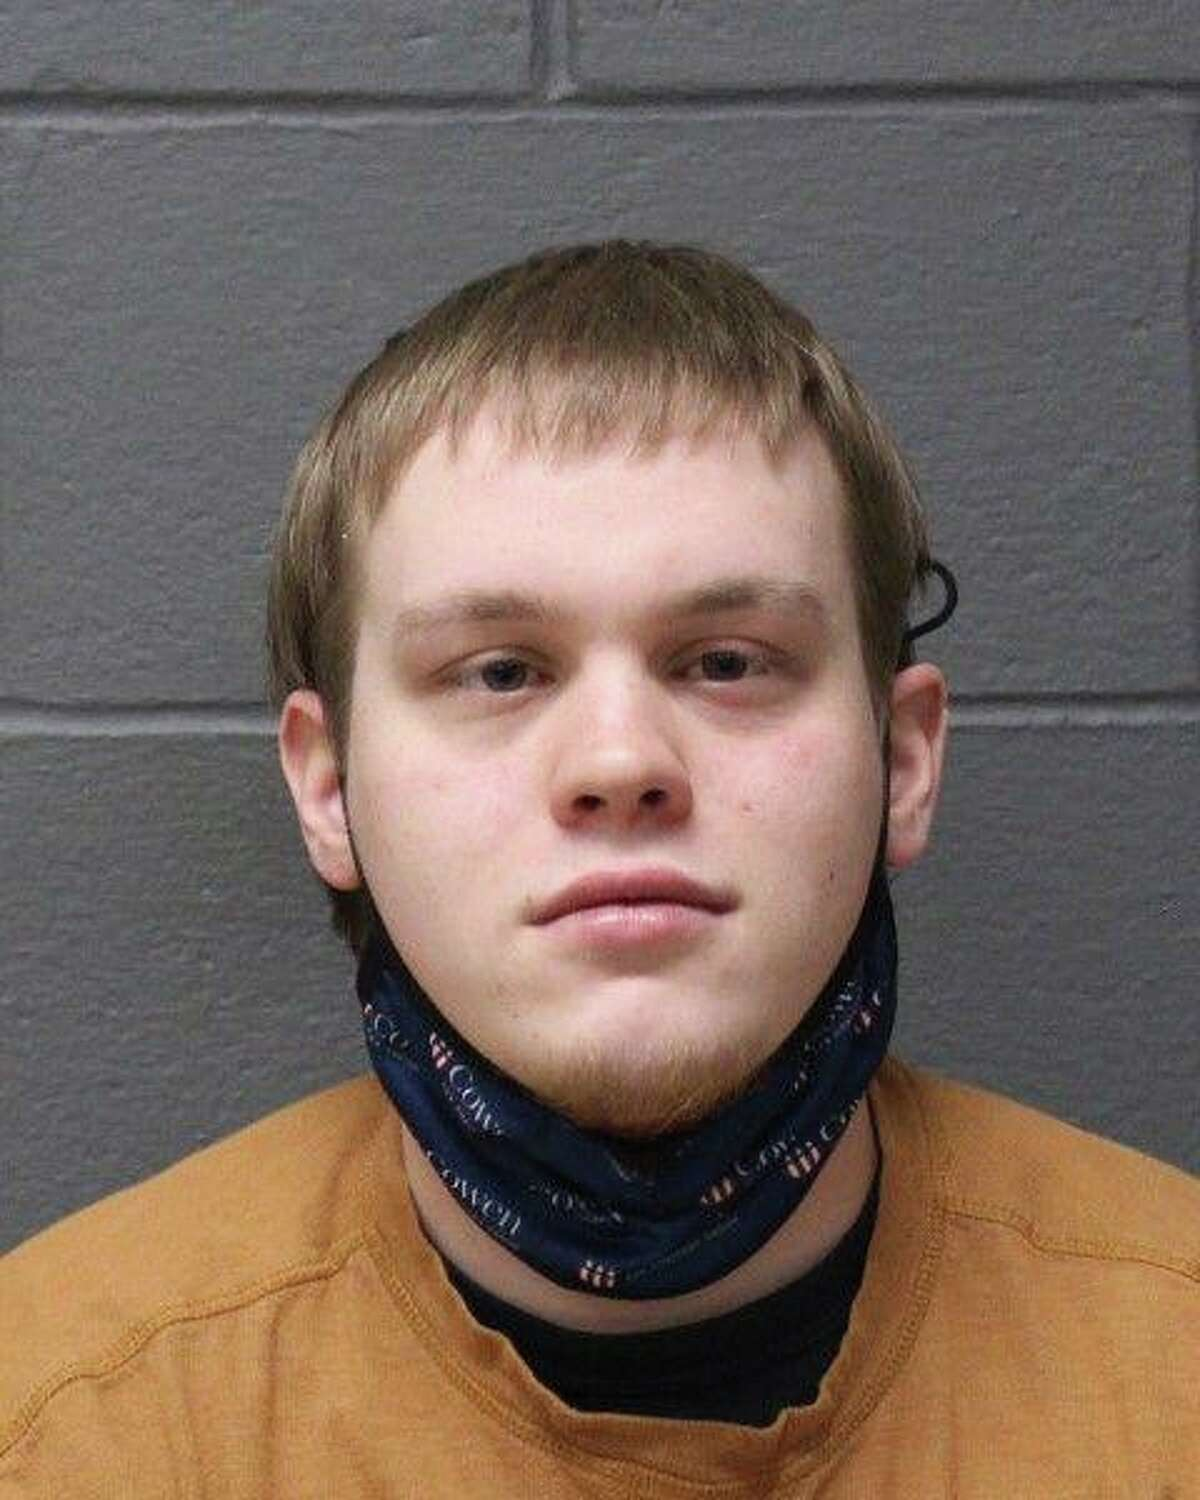 Mark F. Daly, 24, of Heather Lane in Southington, Conn., was charged with fourth-degree sexual assault.